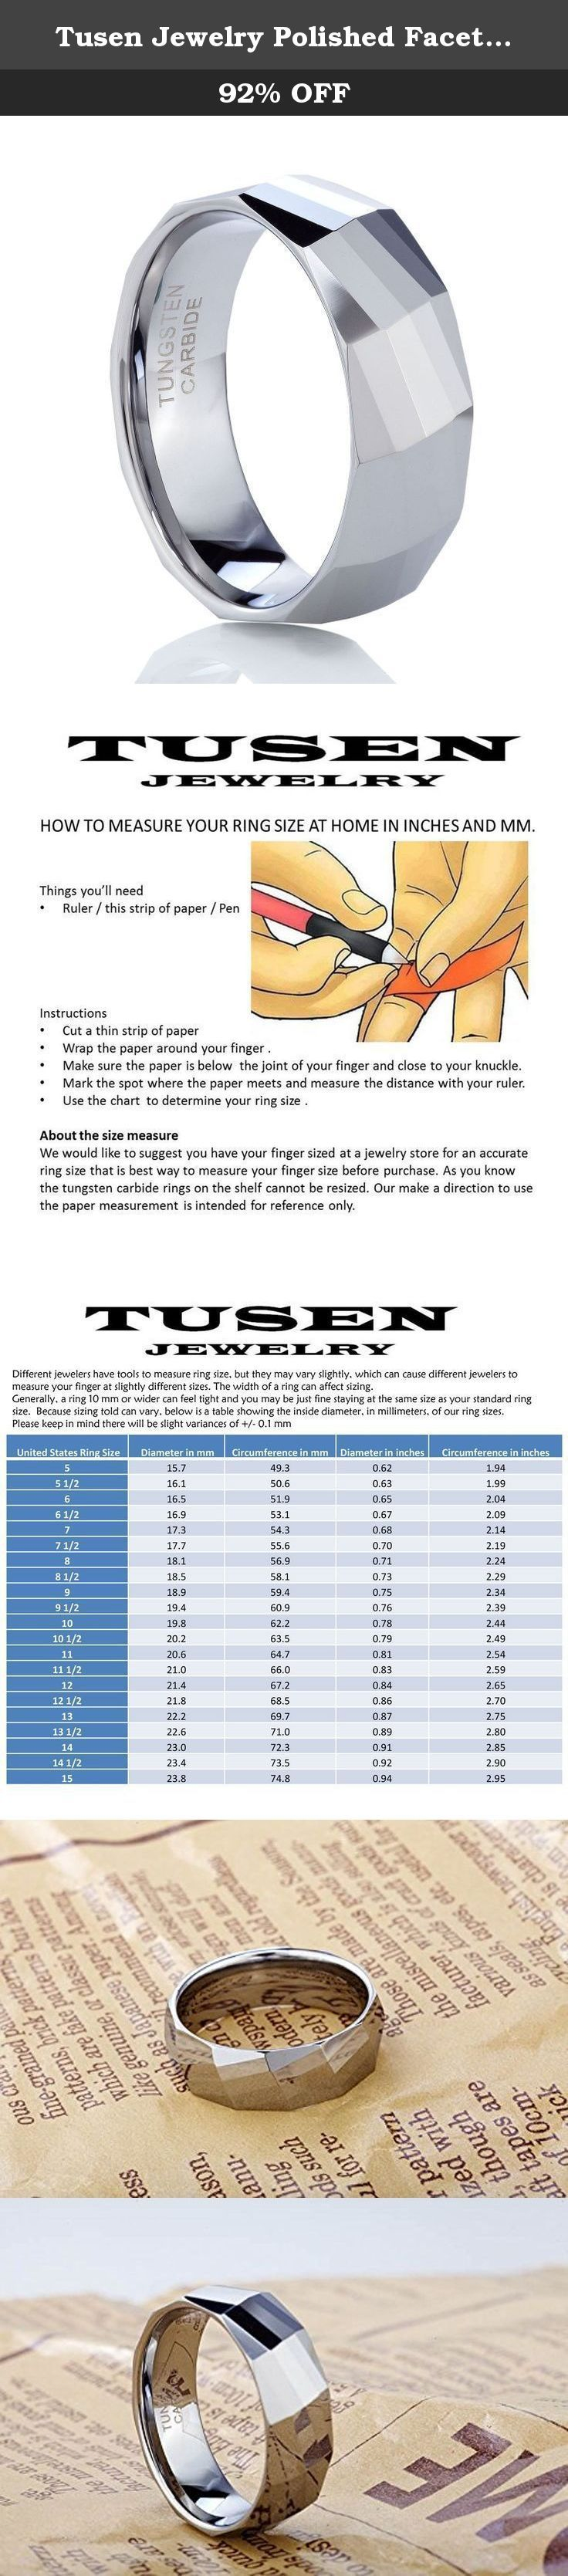 Tusen Jewelry Polished Facet Cut Shiny Tungsten Carbide Wedding Band Ring 8MM Size. TUSEN JEWELRY-Tungsten Carbide Ring On Amazon For your Aesthetical Life Tusen Jewelry should make our best effort to meet consumer demand for really high quality jewelry with reasonable price. Tusen Jewelry - Always keep in touch with our clients closely for Aesthetical Life.Share your beauty to this world. Tungsten Ring Maintenance Tips 1.Tungsten ring cleaning: Tungsten jewelry can tarnish and also be...